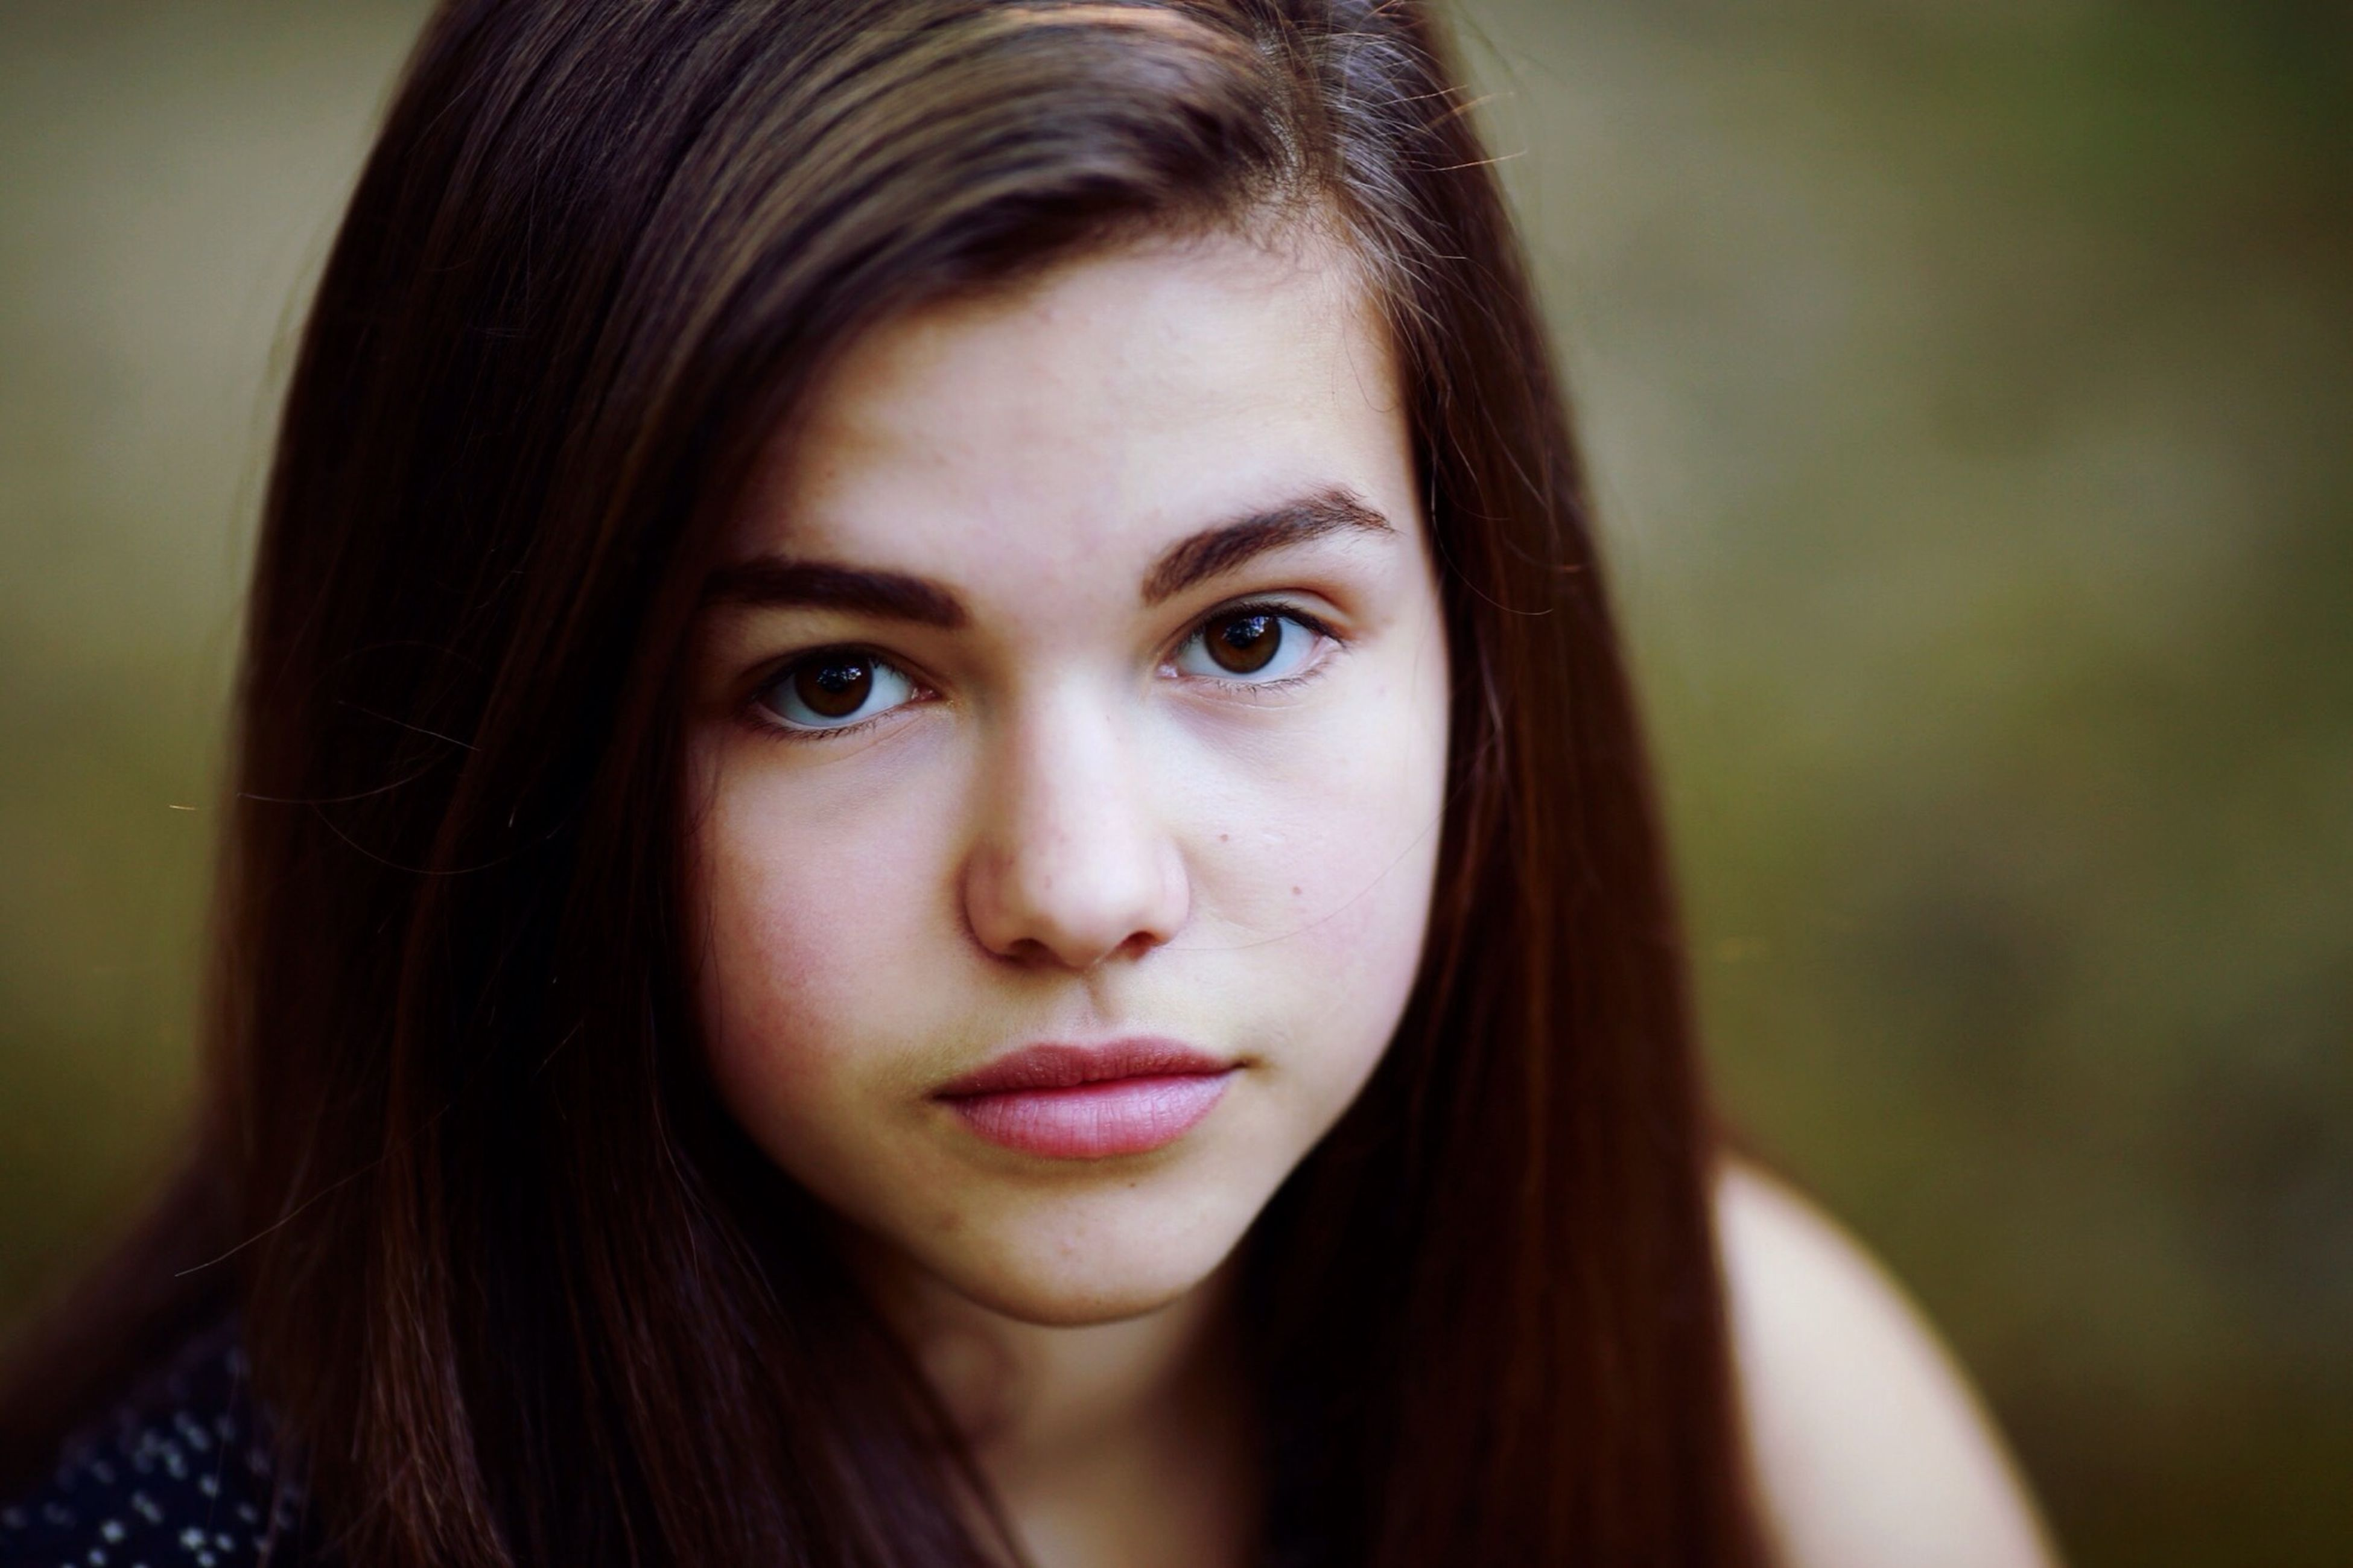 headshot, looking at camera, portrait, young women, young adult, long hair, person, close-up, focus on foreground, lifestyles, front view, human face, head and shoulders, leisure activity, brown hair, beauty, contemplation